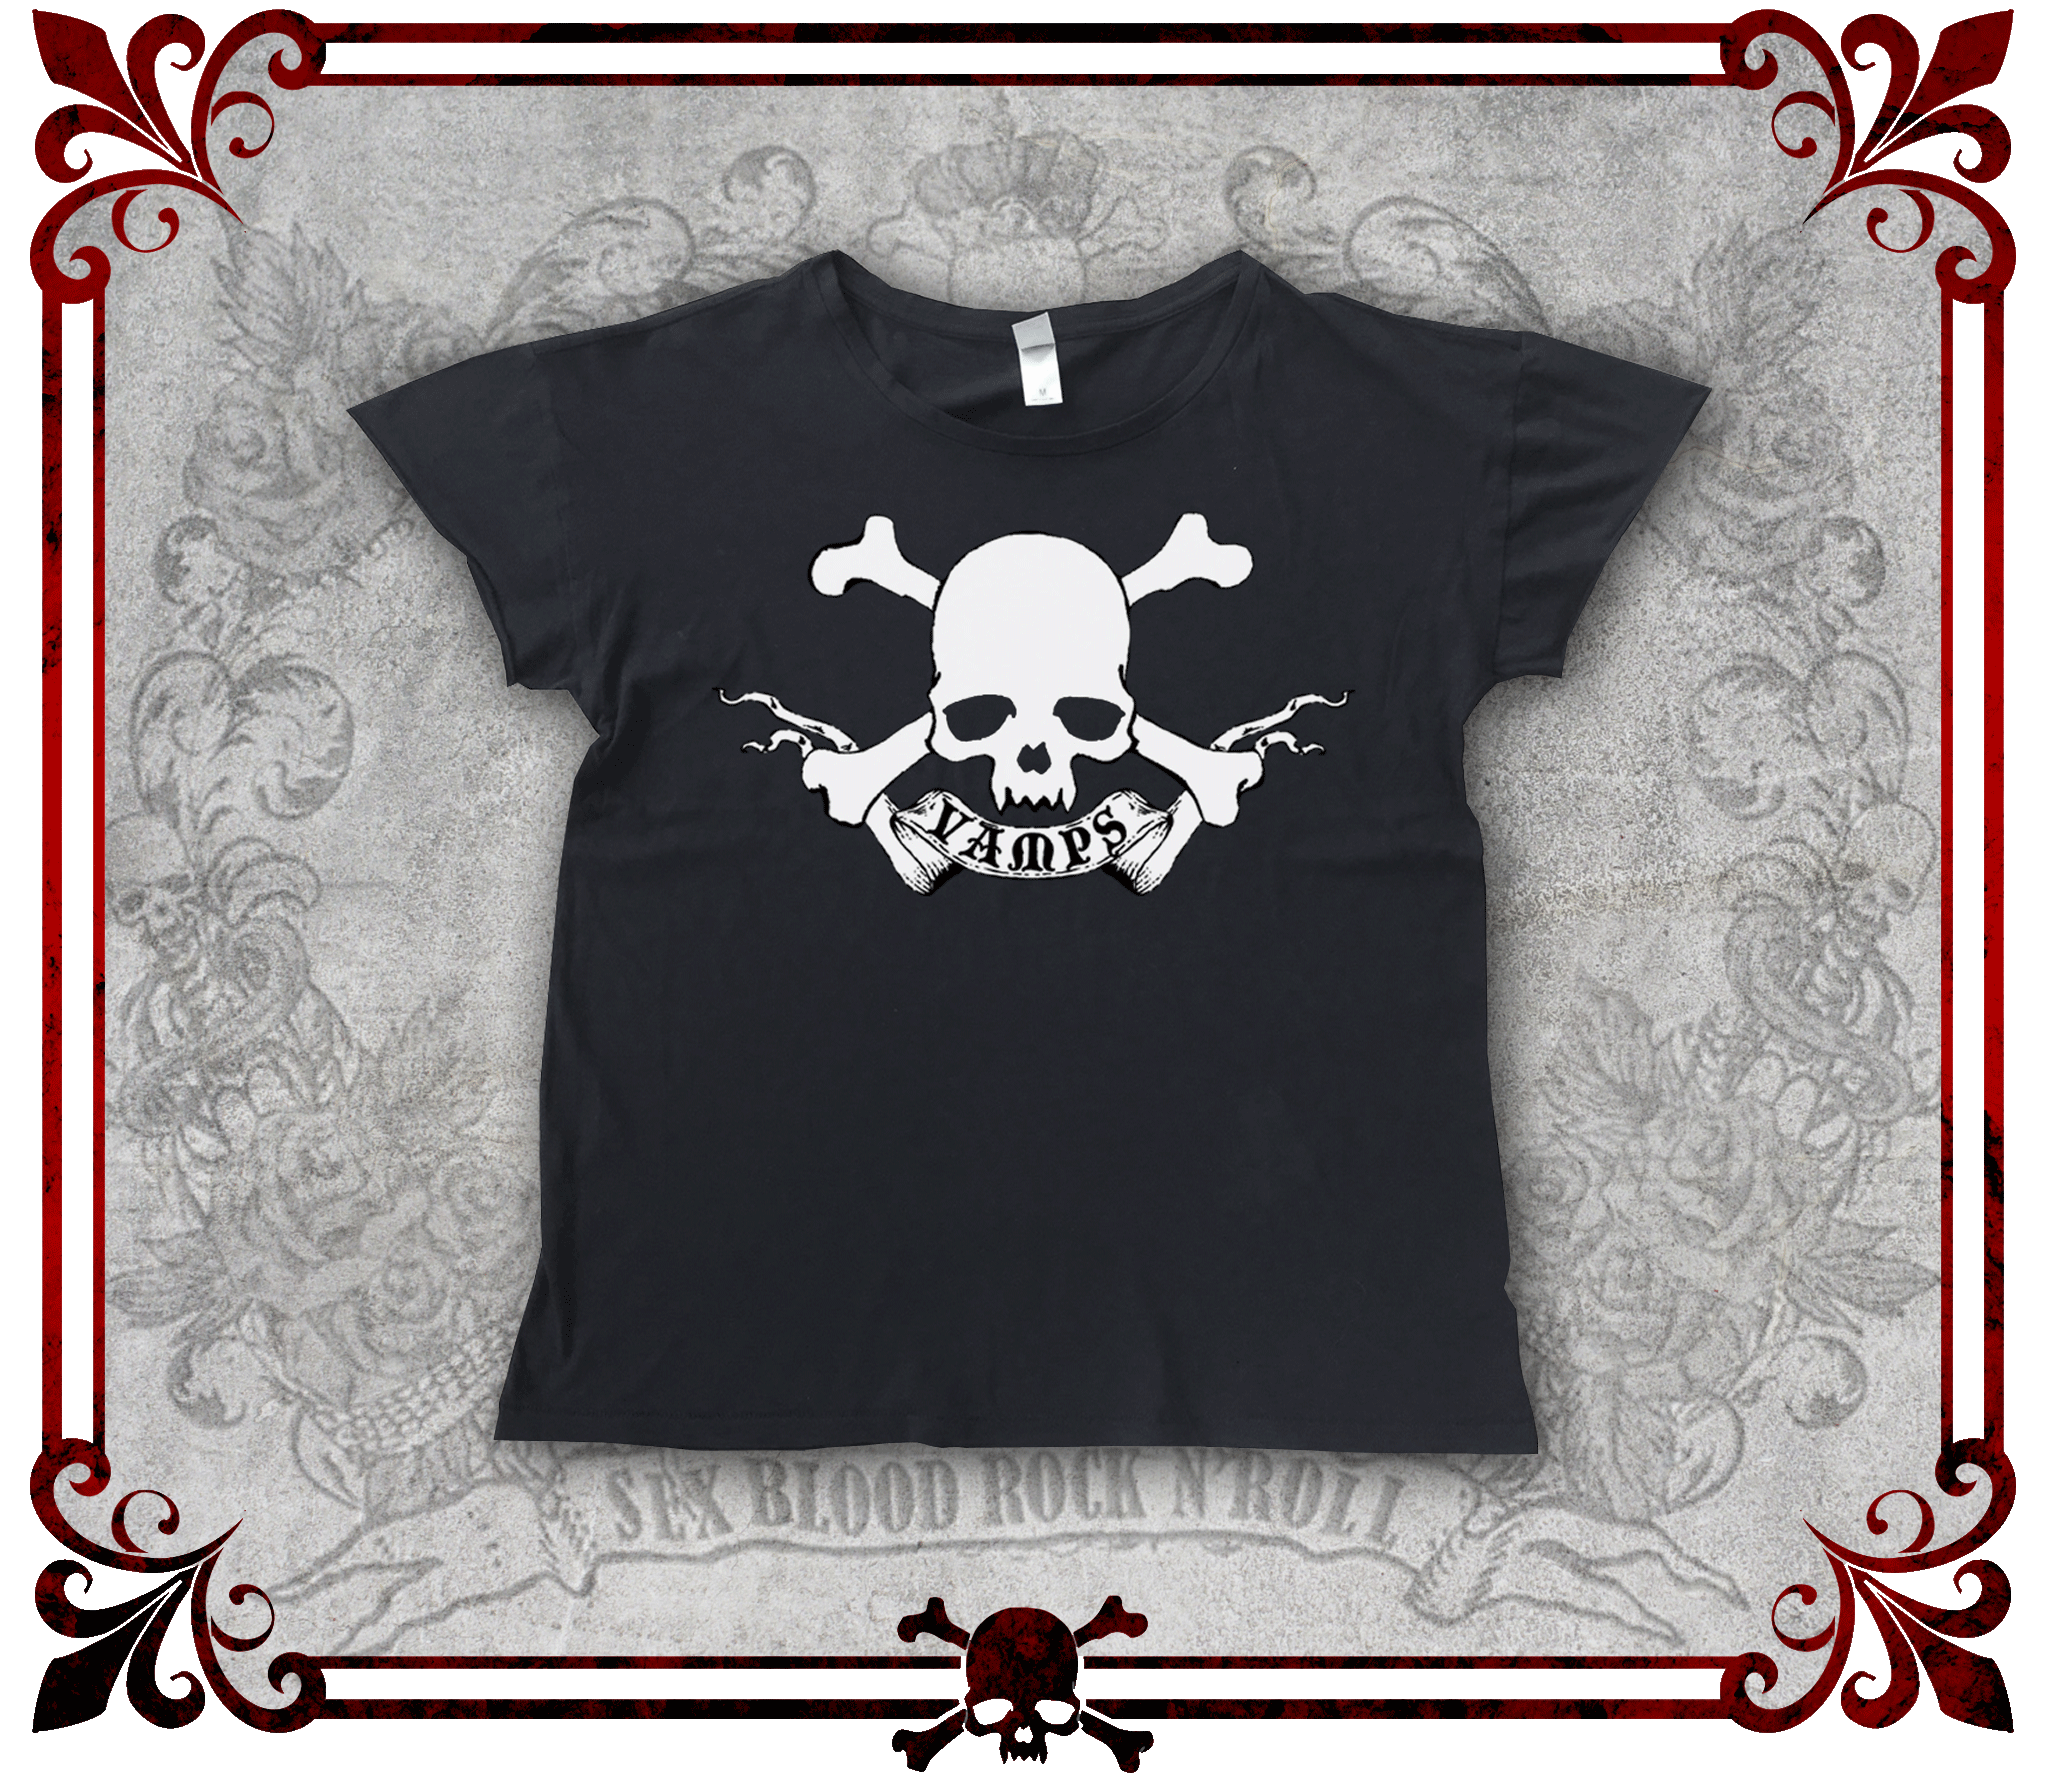 VAMPS Skull Rocker T-Shirt (Women's)/VAMPS スカル ロッカーTシャツ(女性用)/Camiseta con calavera de VAMPS (Mujer)